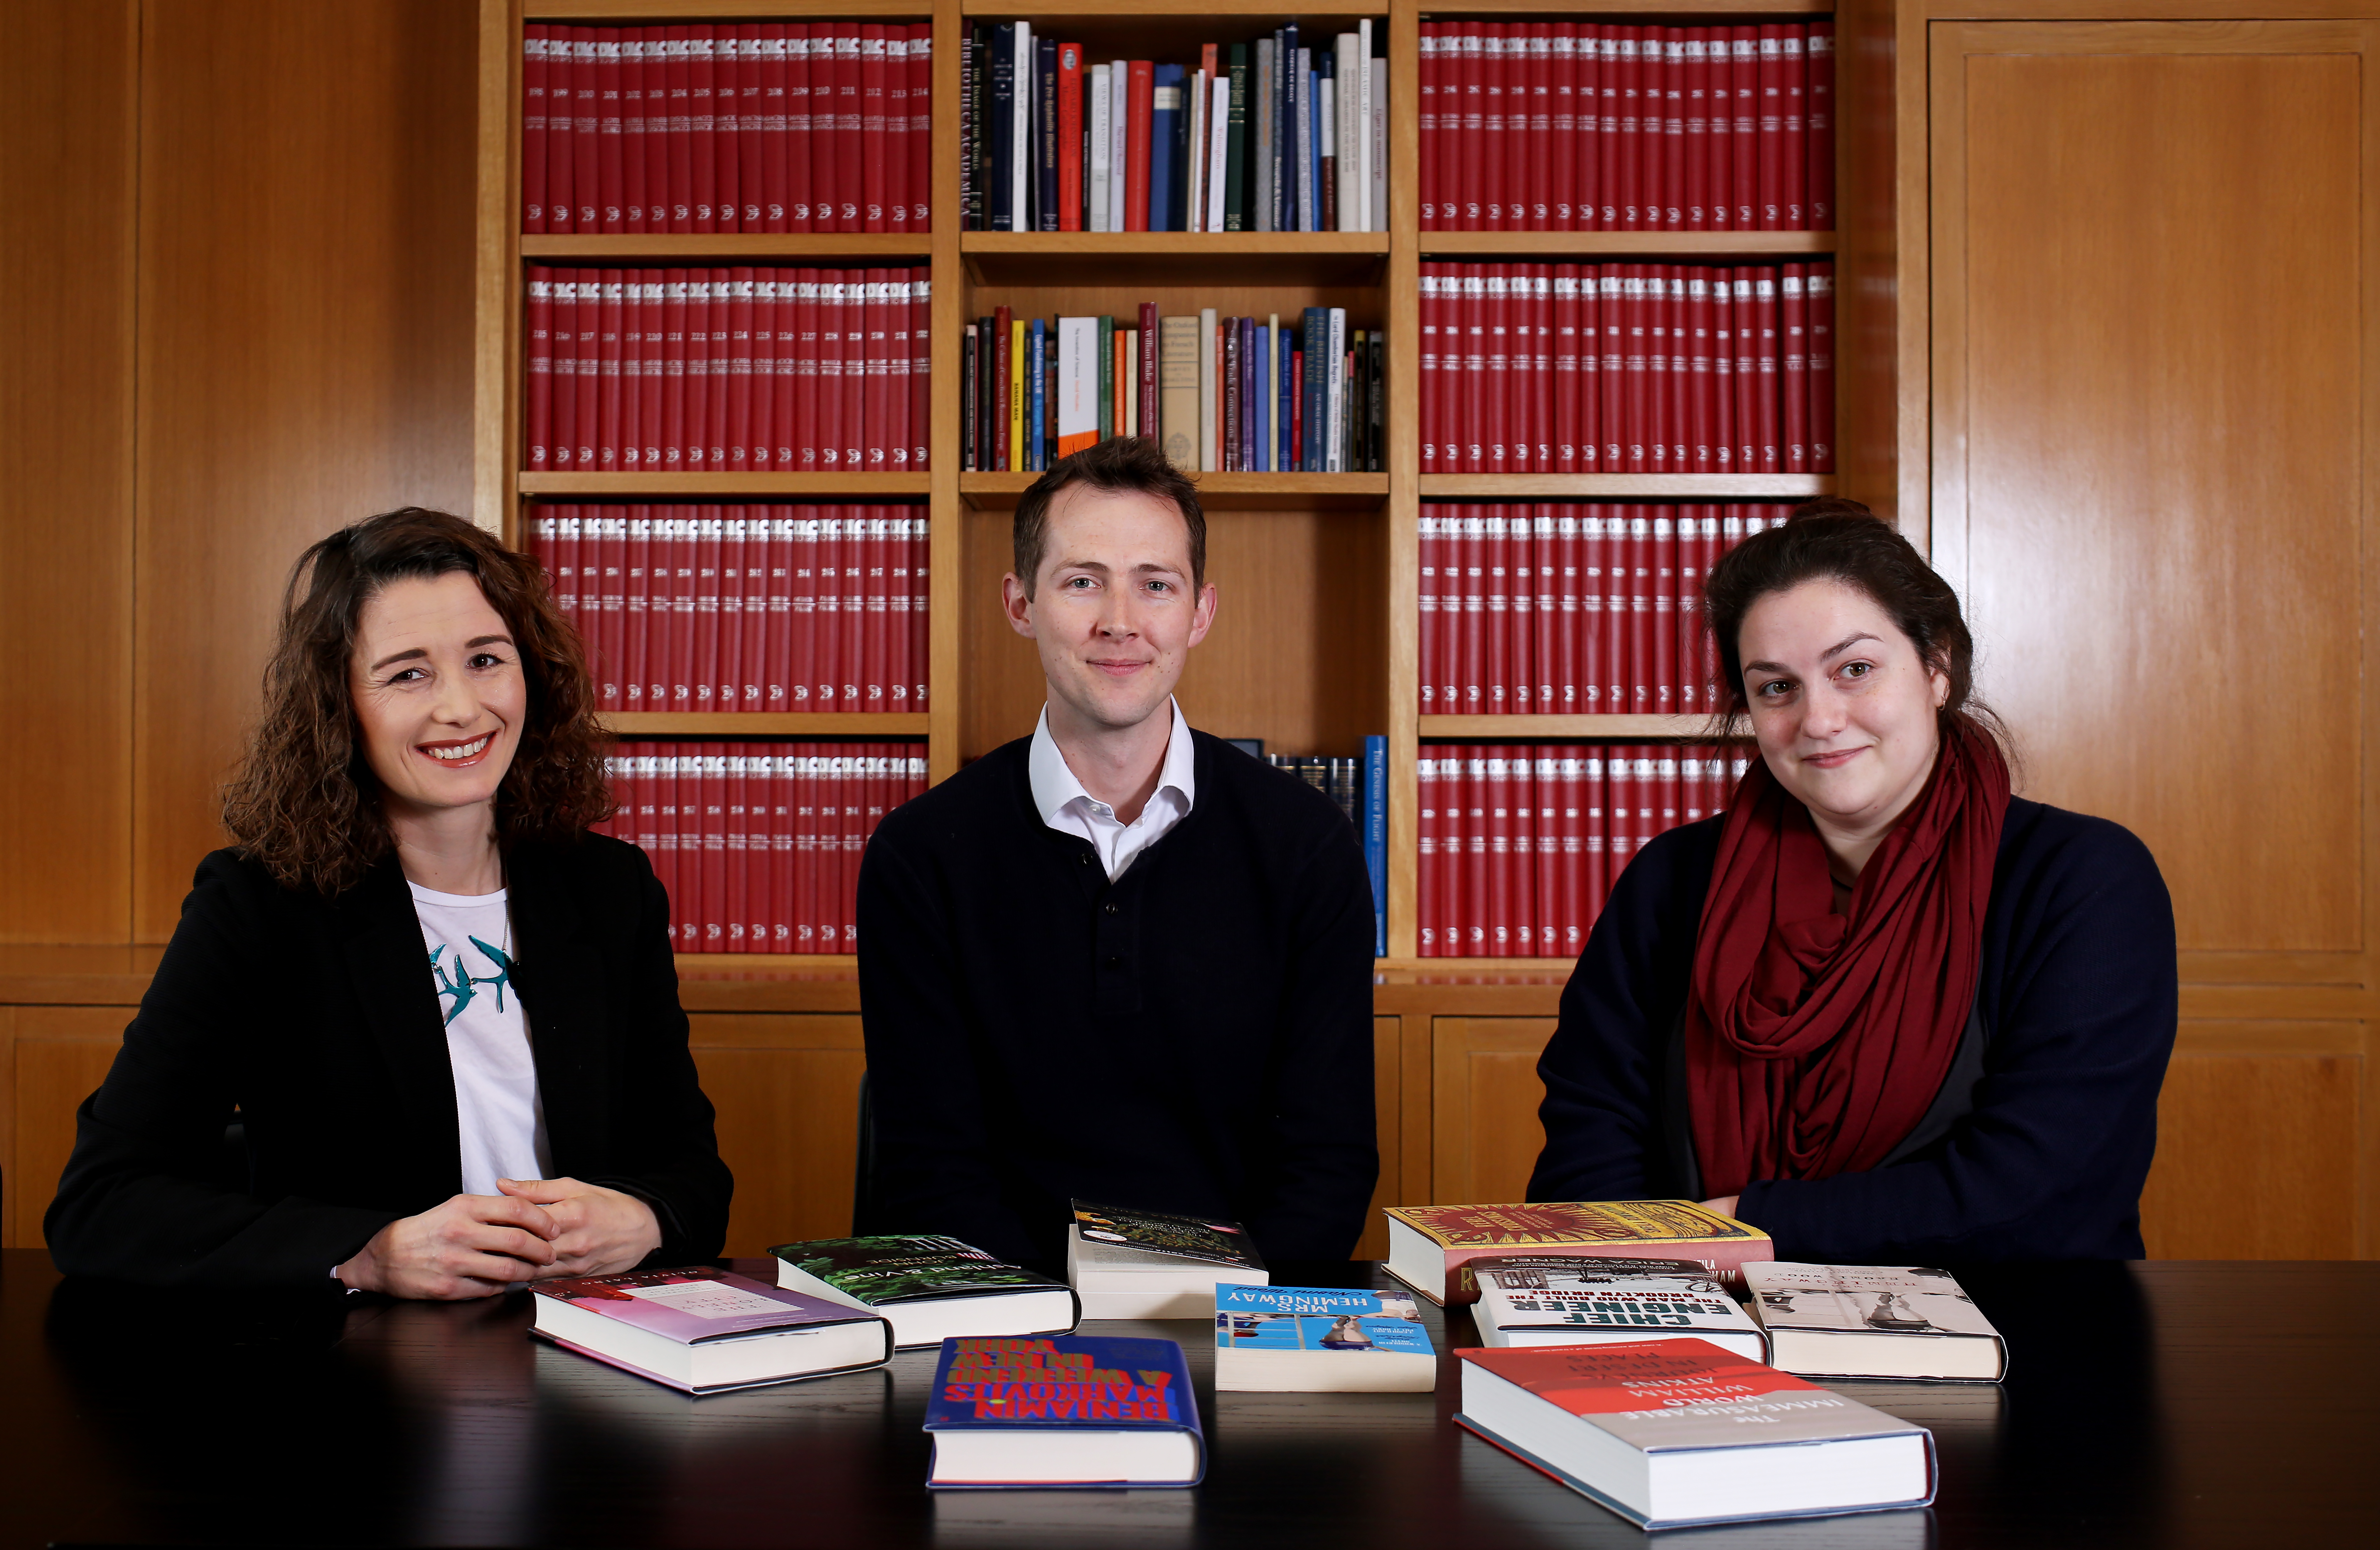 rachel-hewitt-phil-hatfield-and-sara-taylor-photograph-by-clara-molden-at-the-british-library.JPG